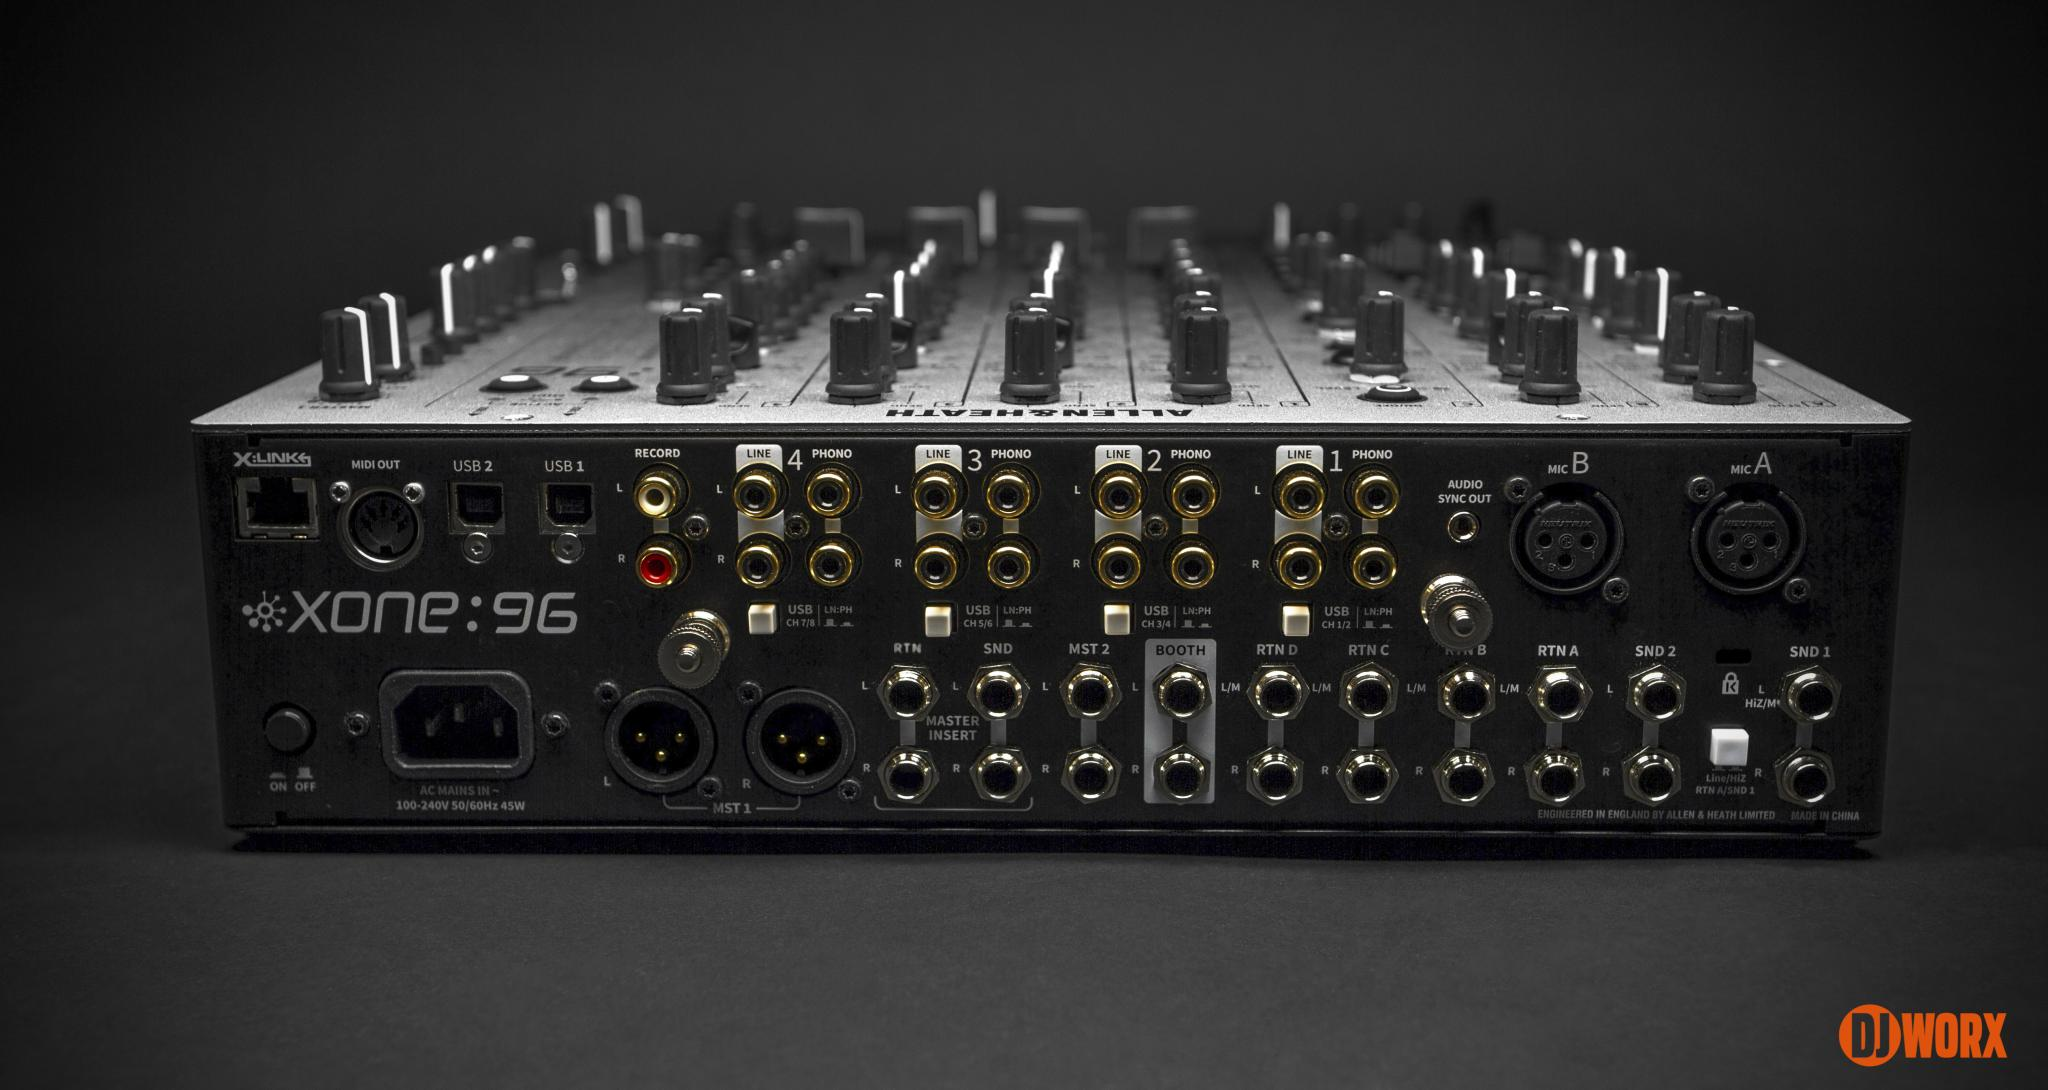 Allen & Heath Xone:96 mixer review first look preview (2)